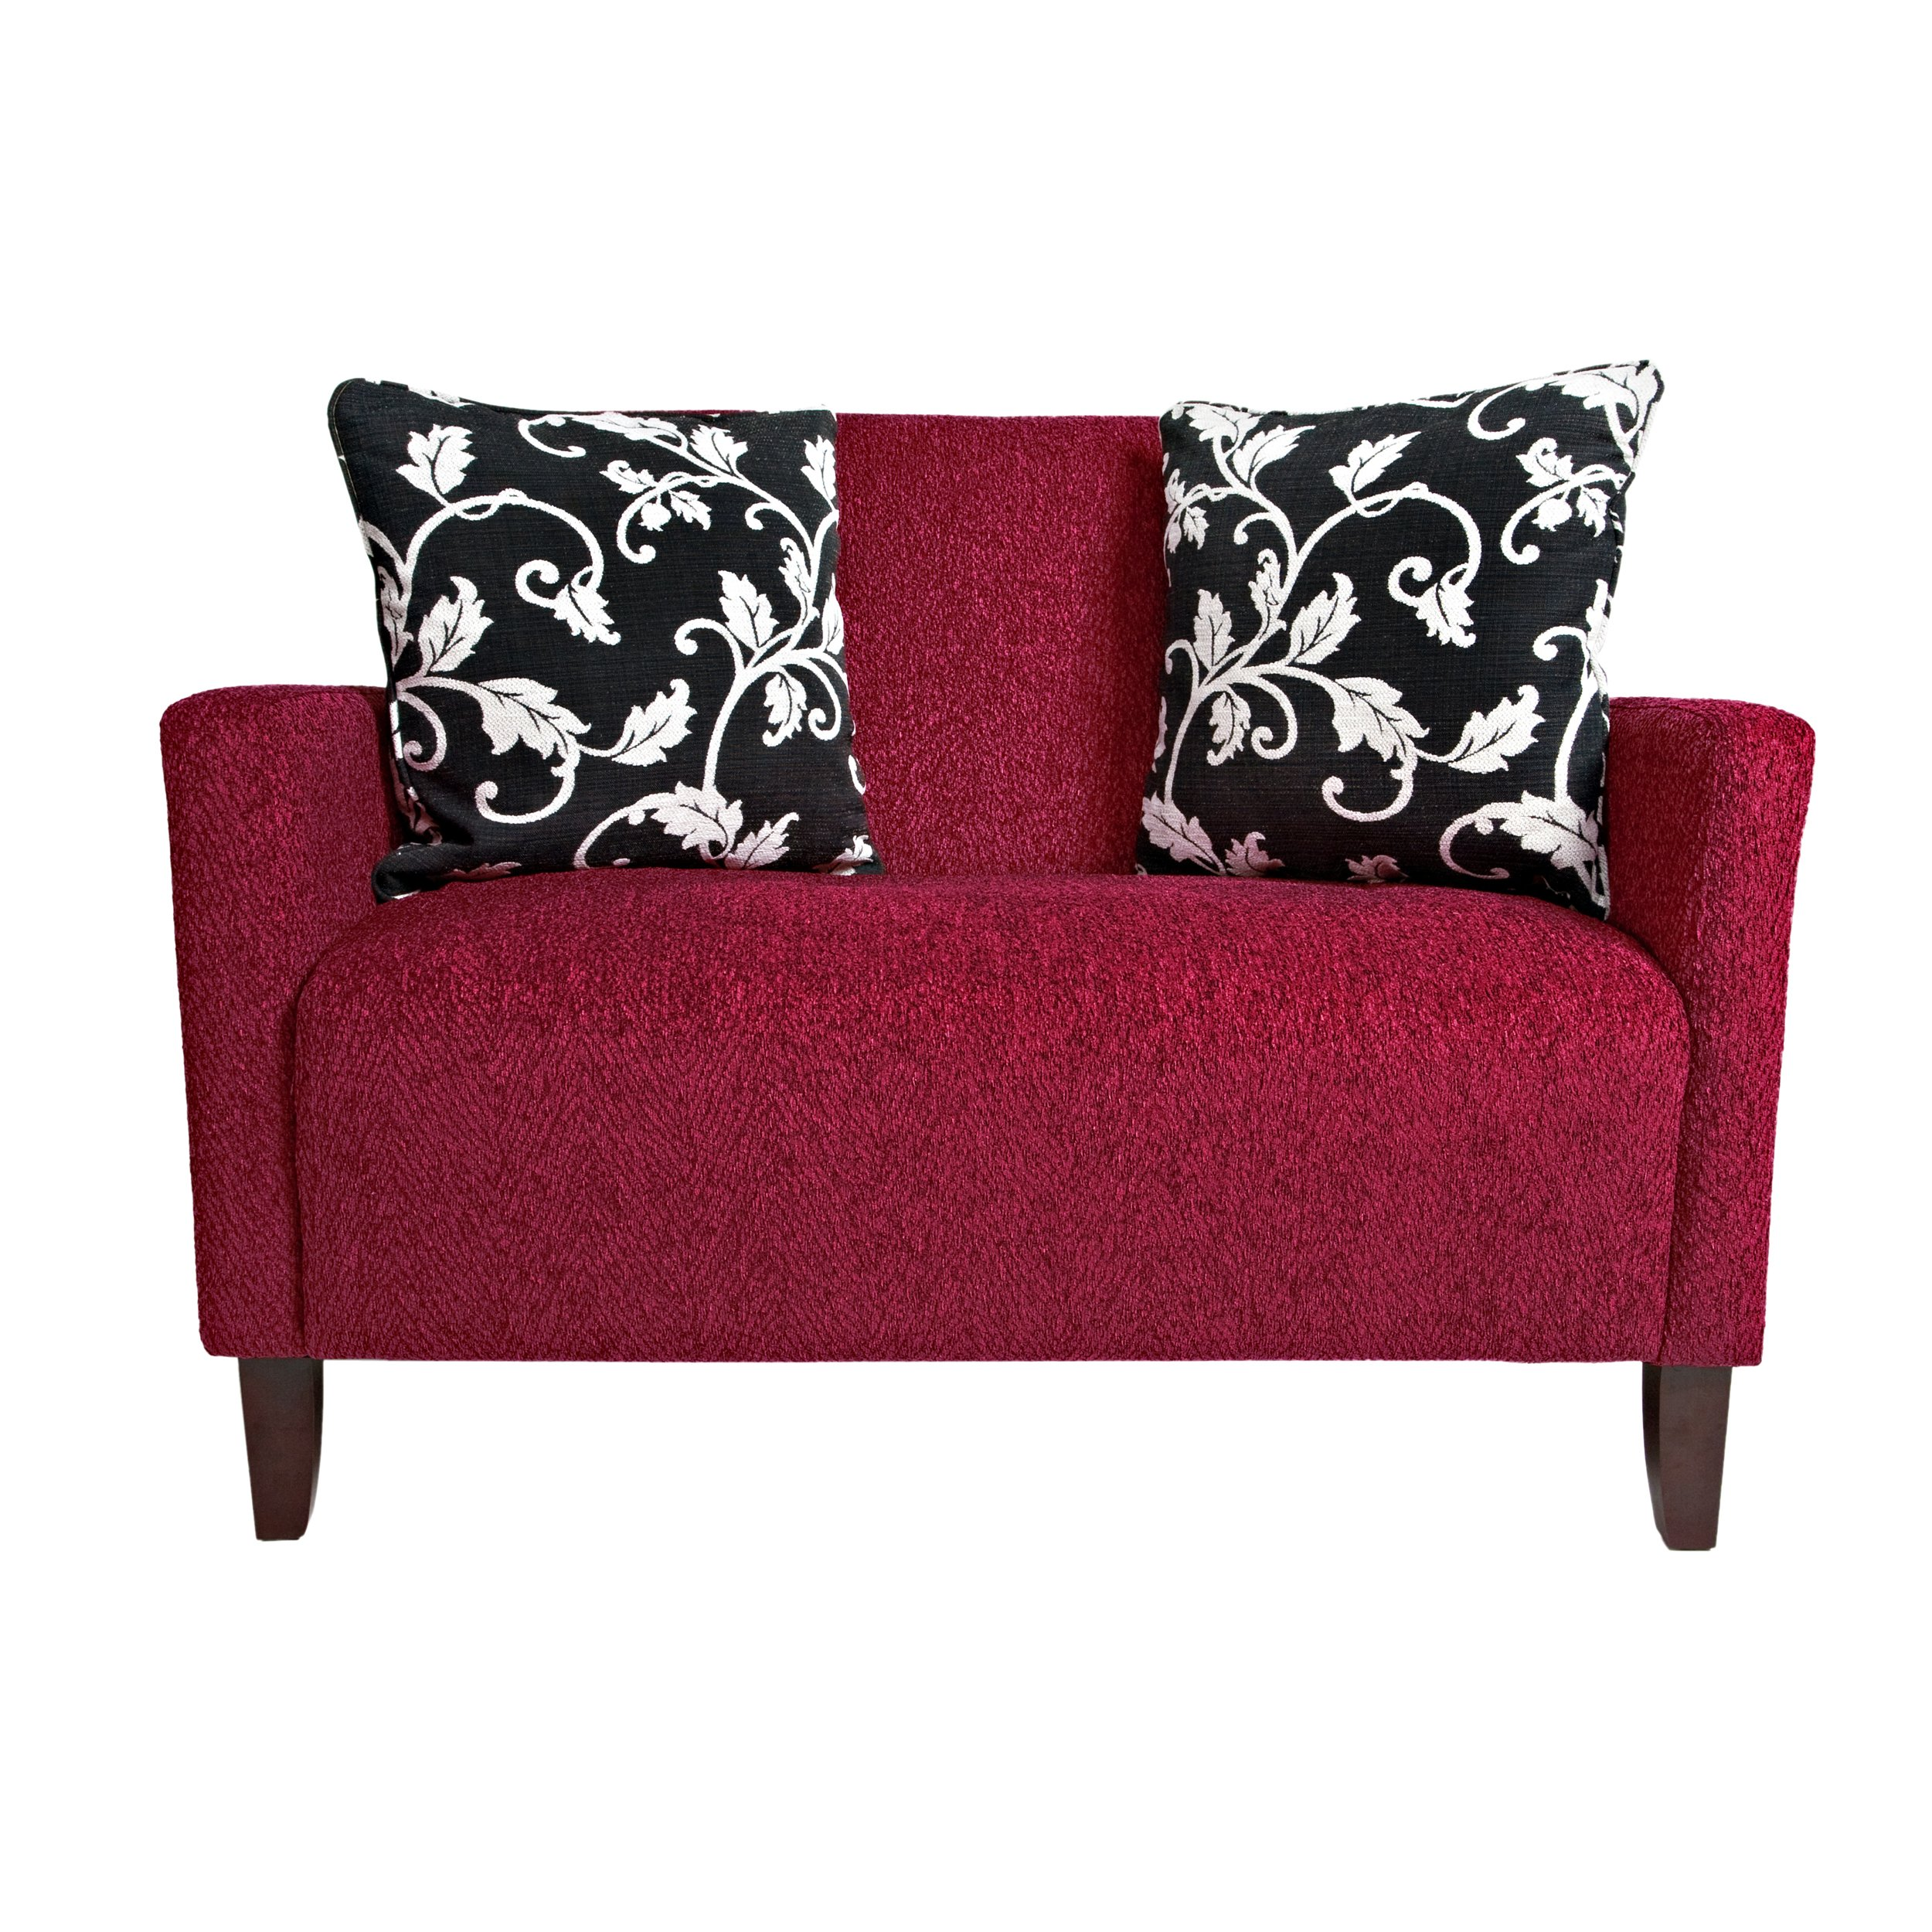 Sofas and Couches FurnitureNdecor